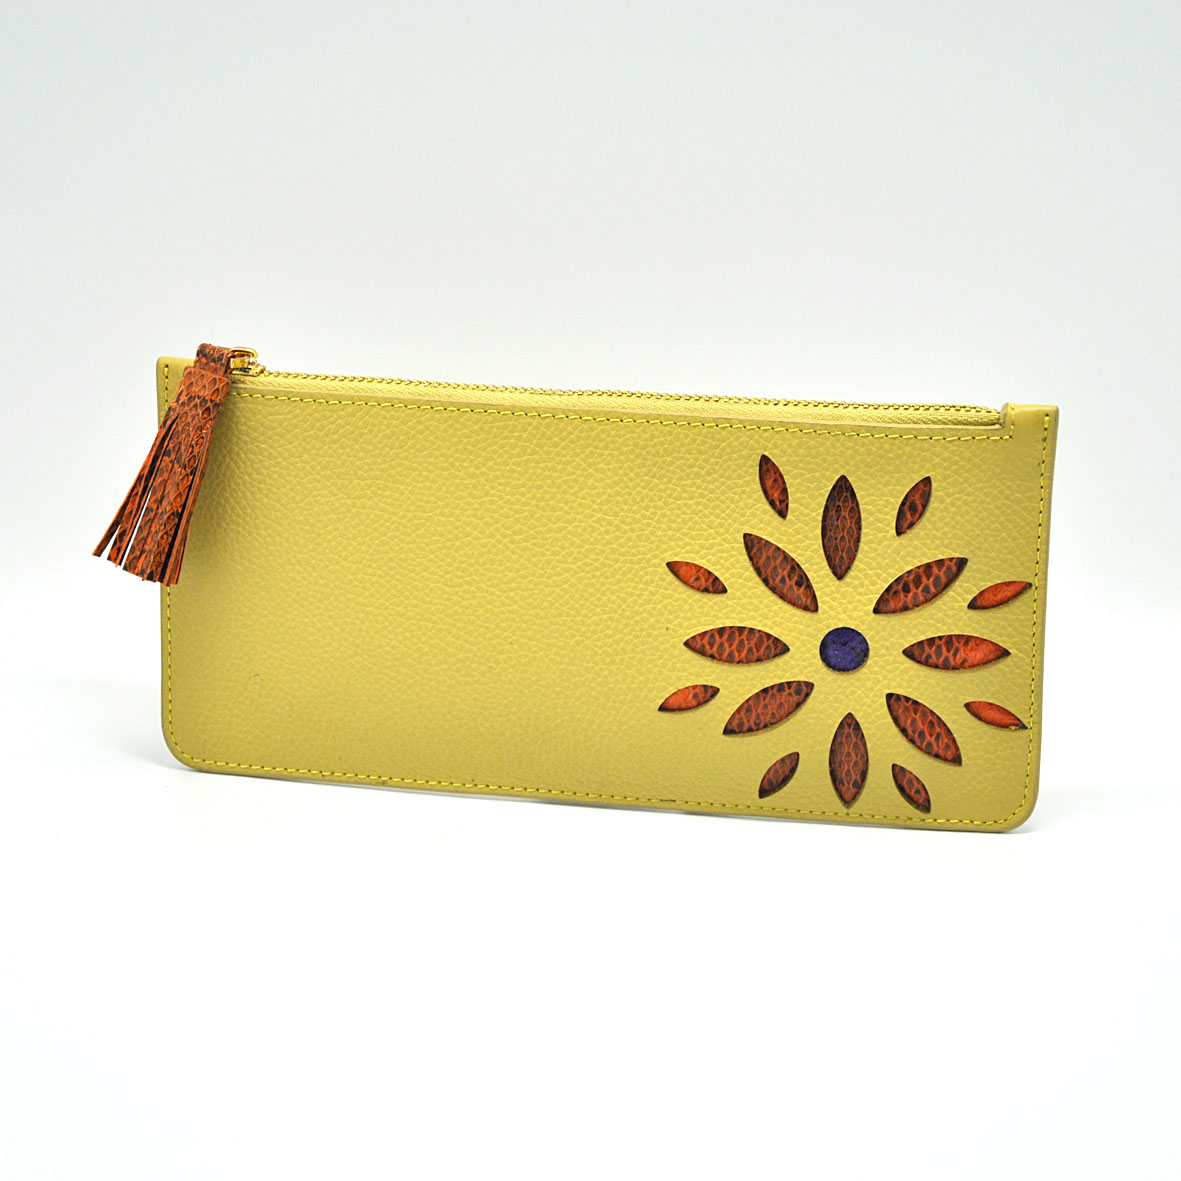 Pouch - Cow Leather